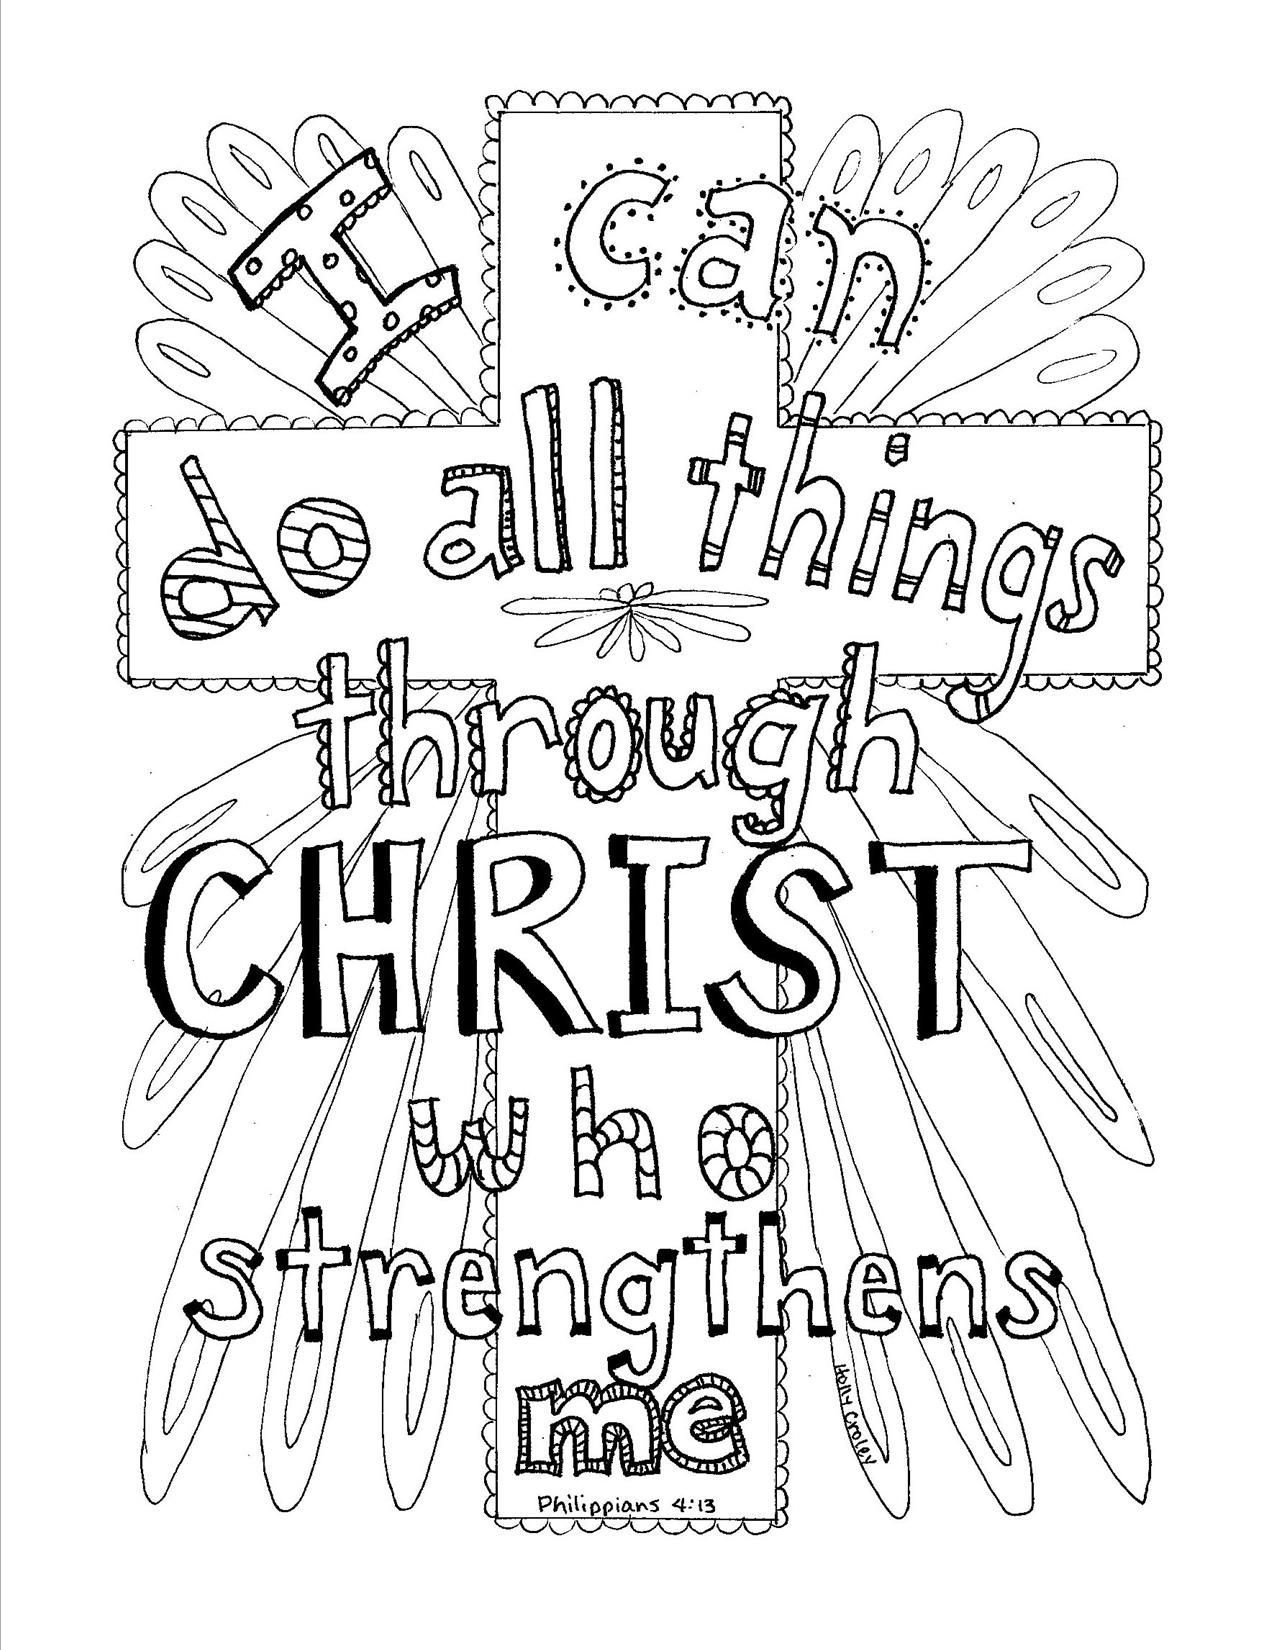 bible verse christian coloring pages bible verse christian coloring pages christian coloring pages verse bible